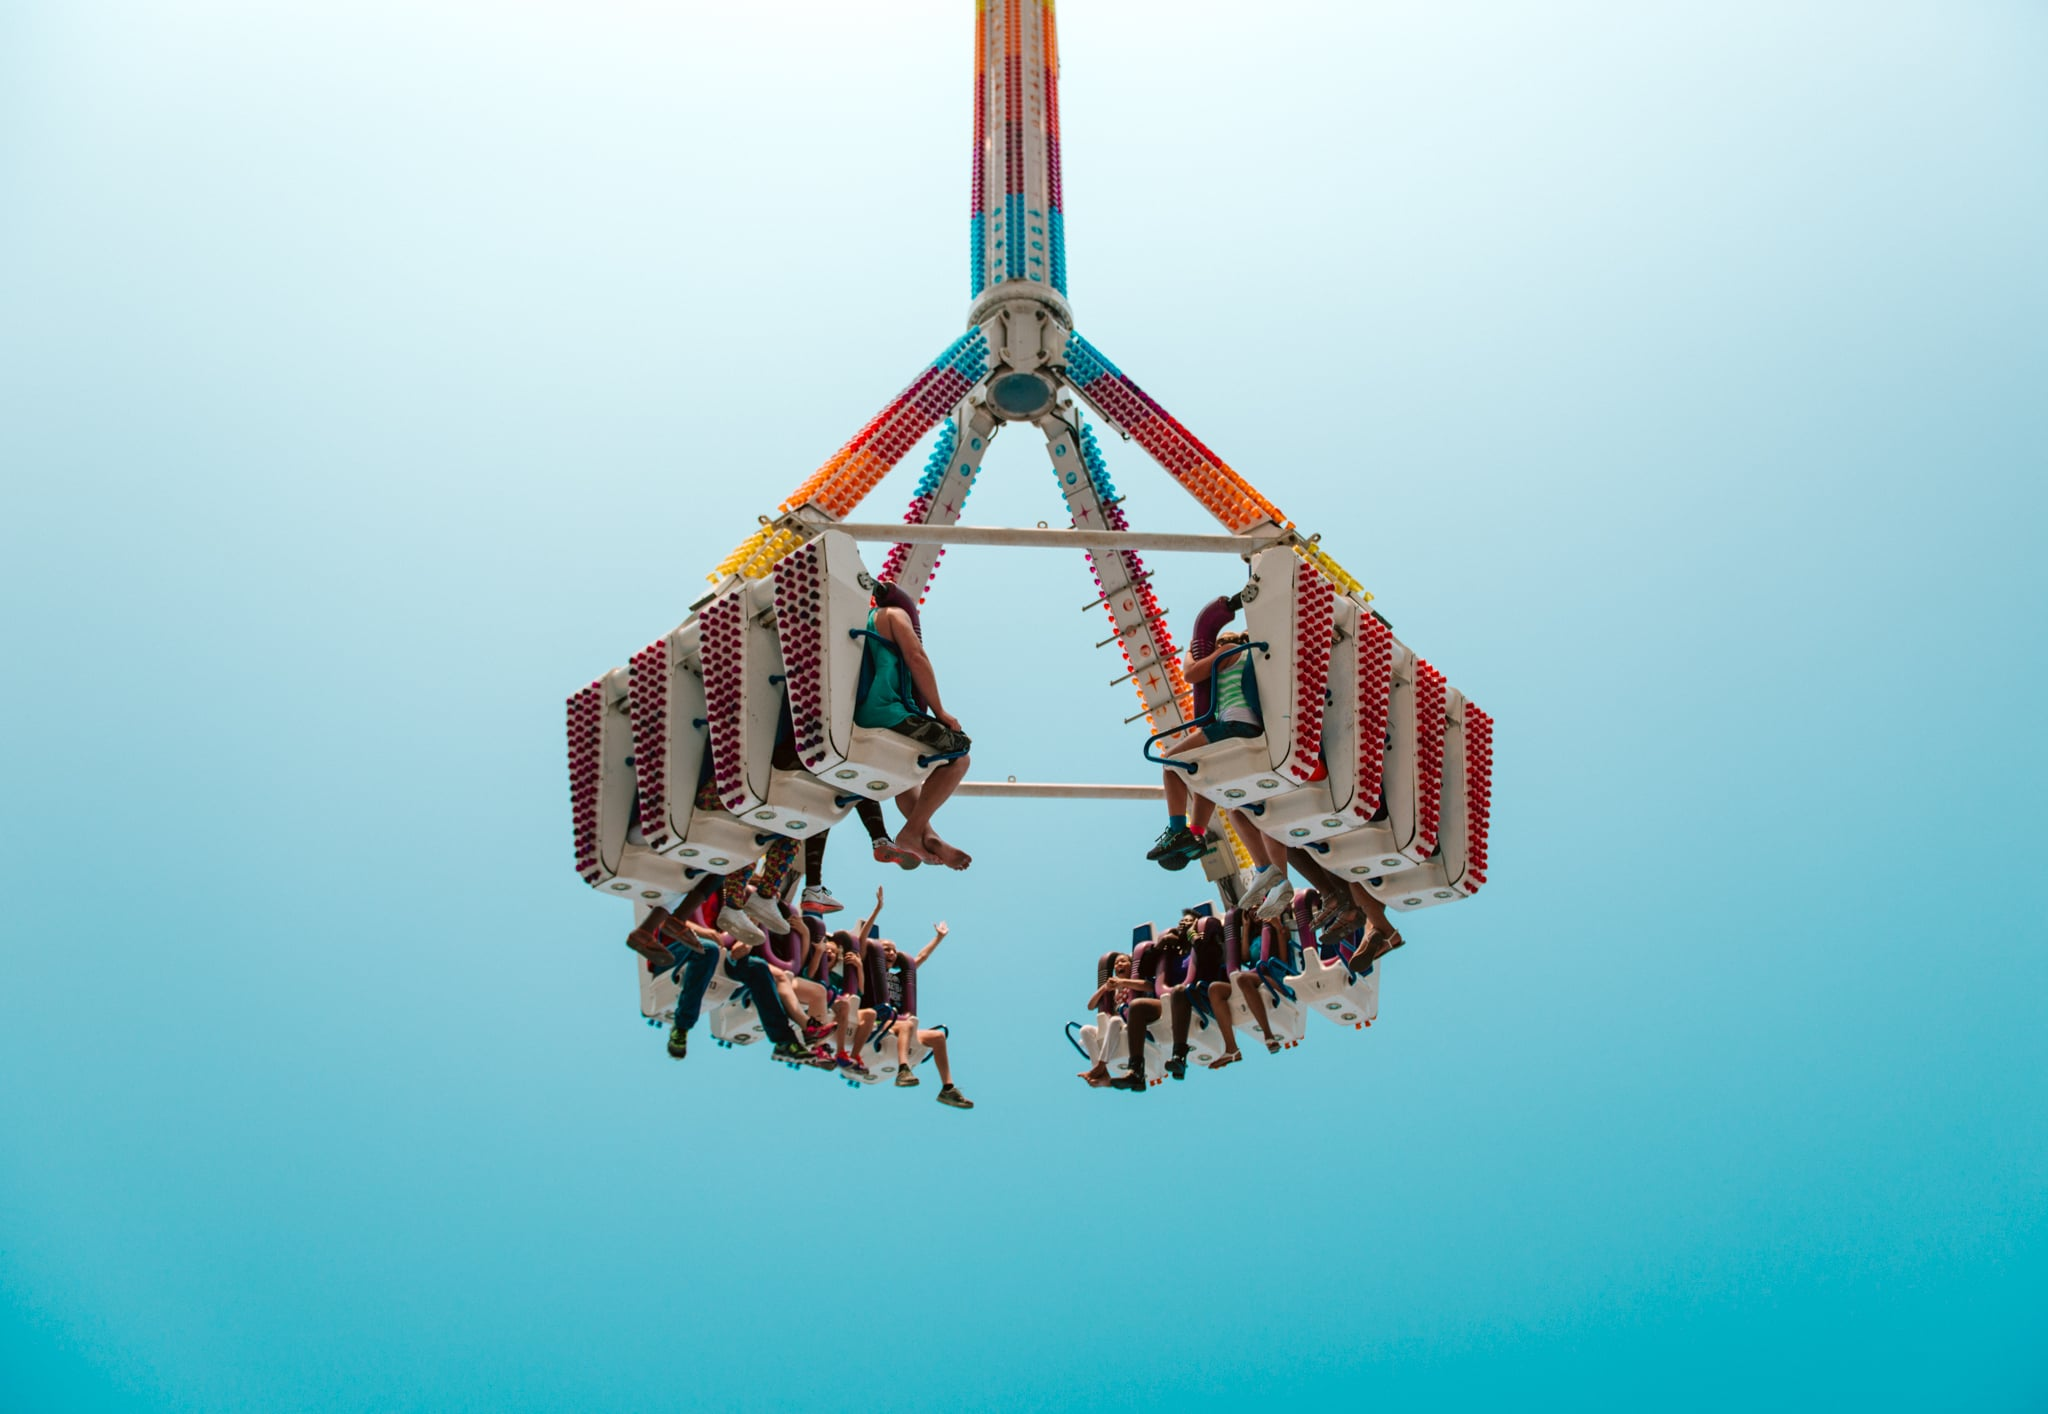 upside down ride-1.JPG